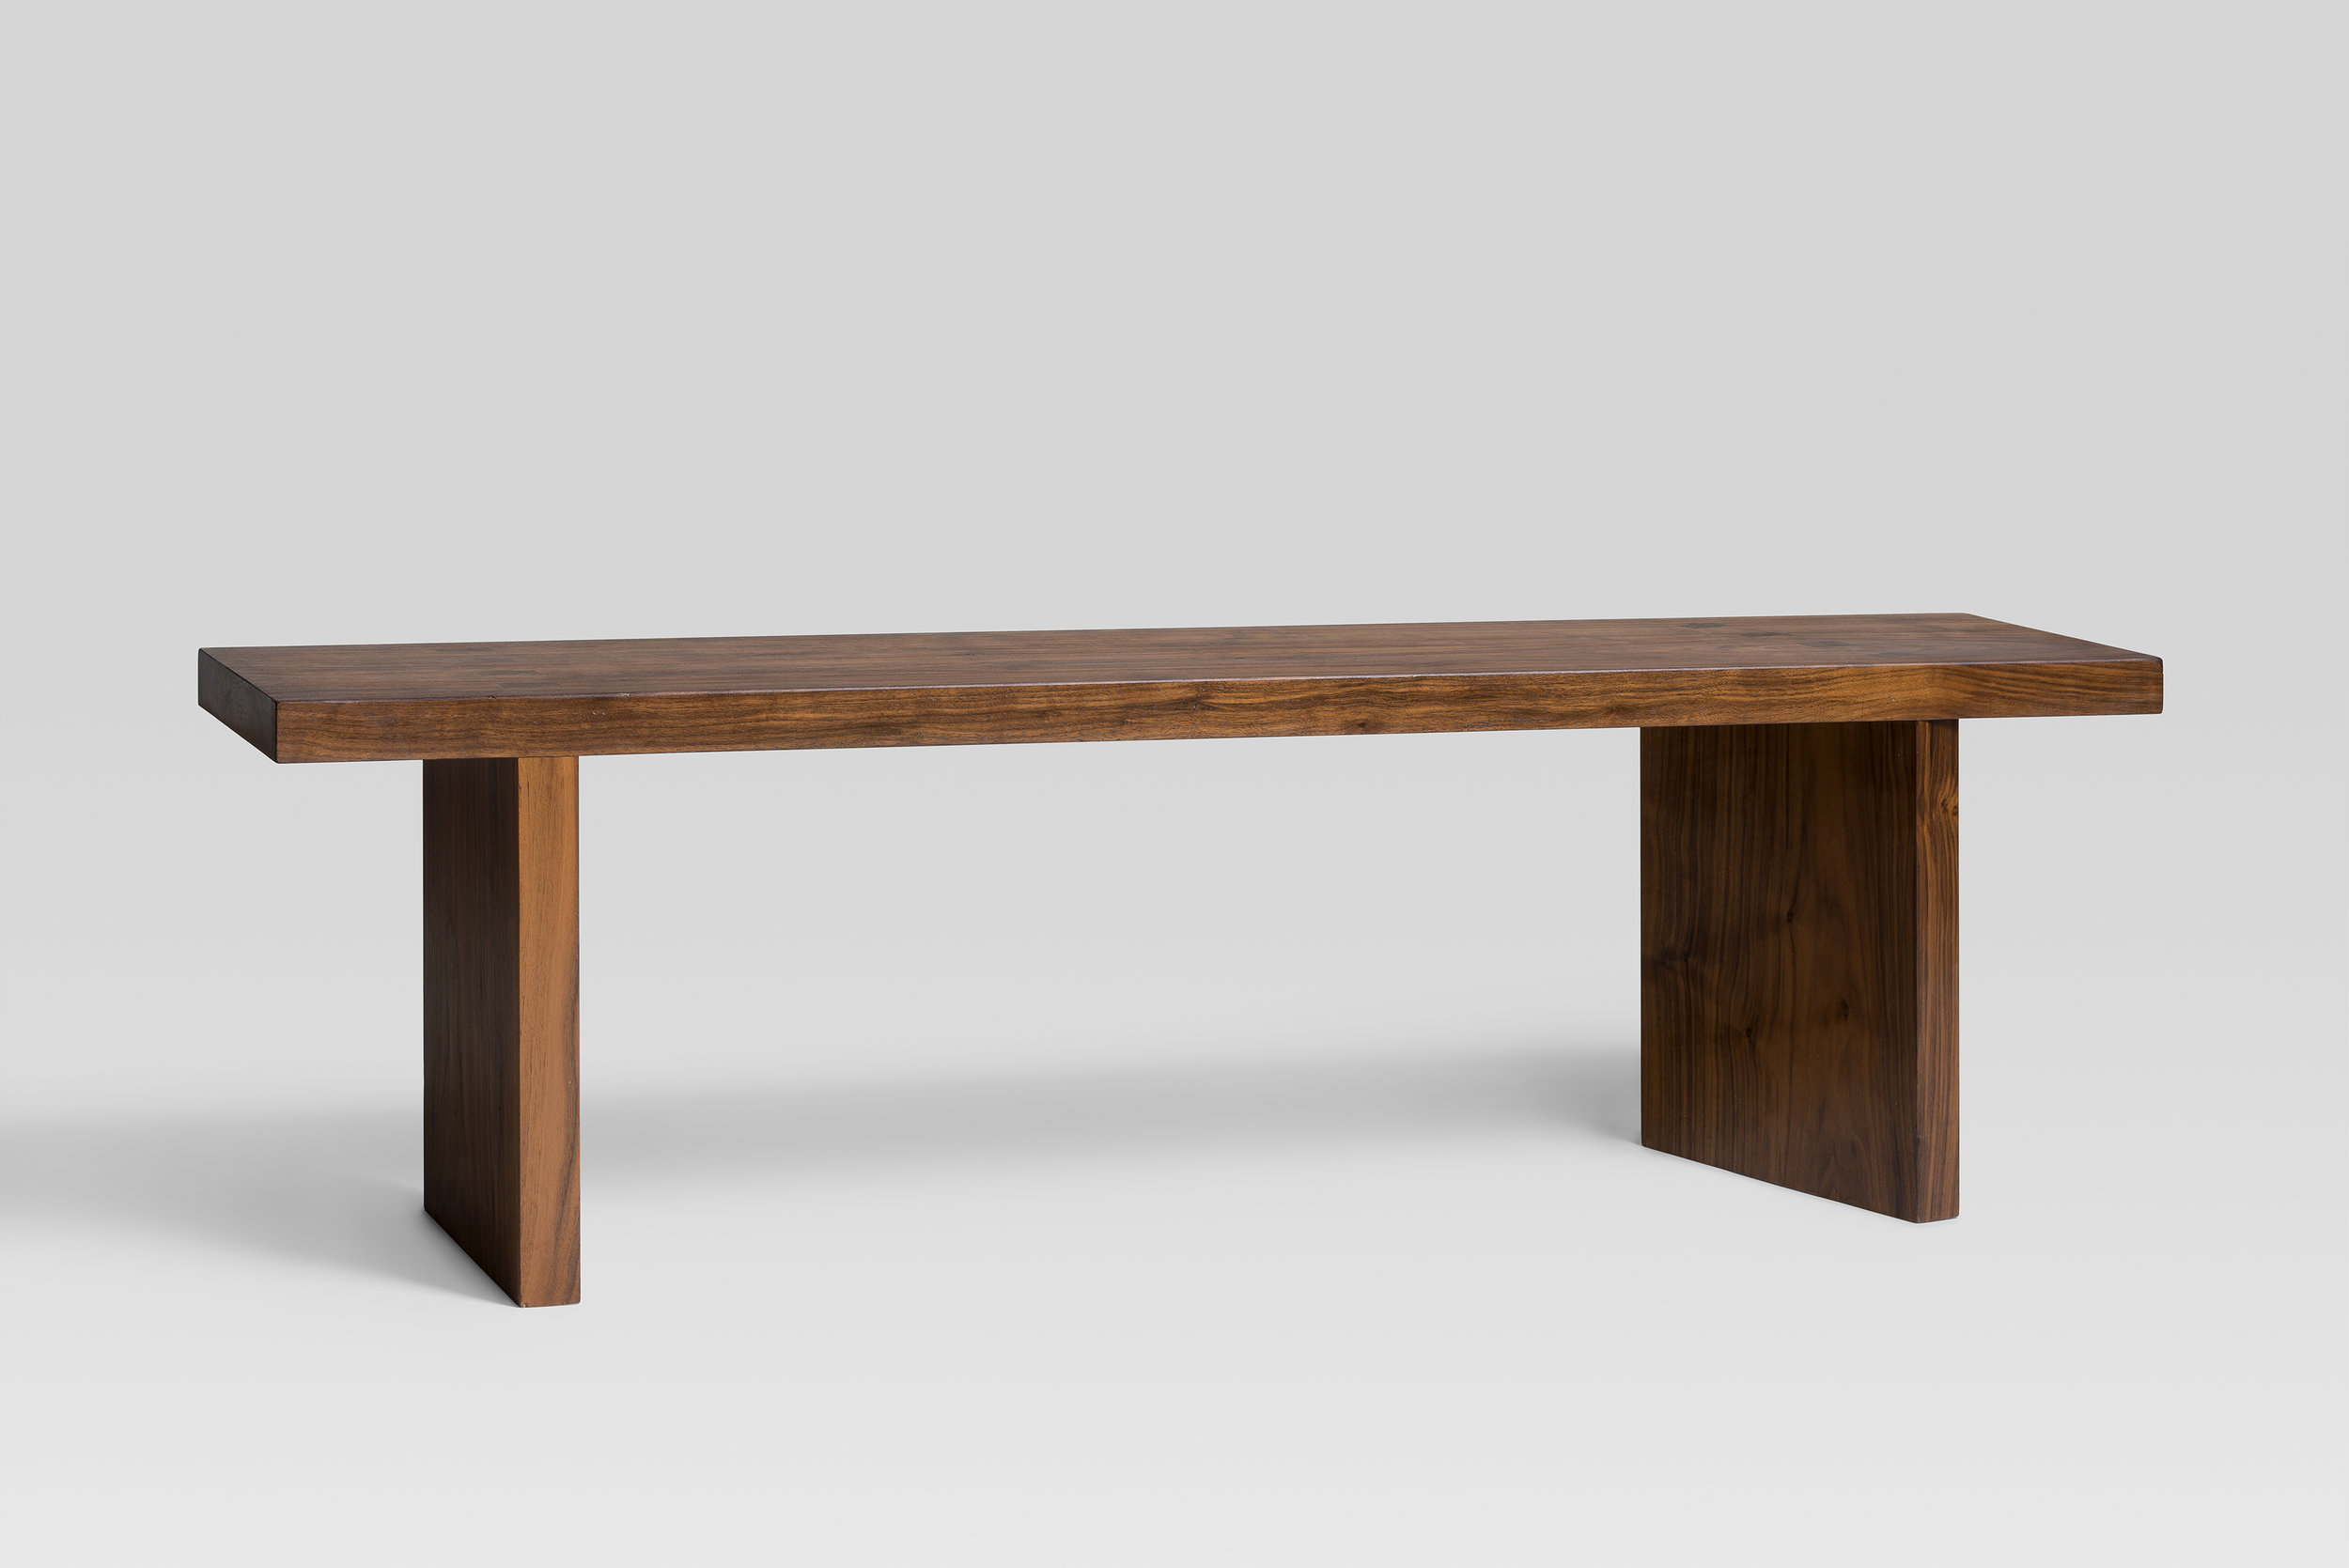 European walnut bench